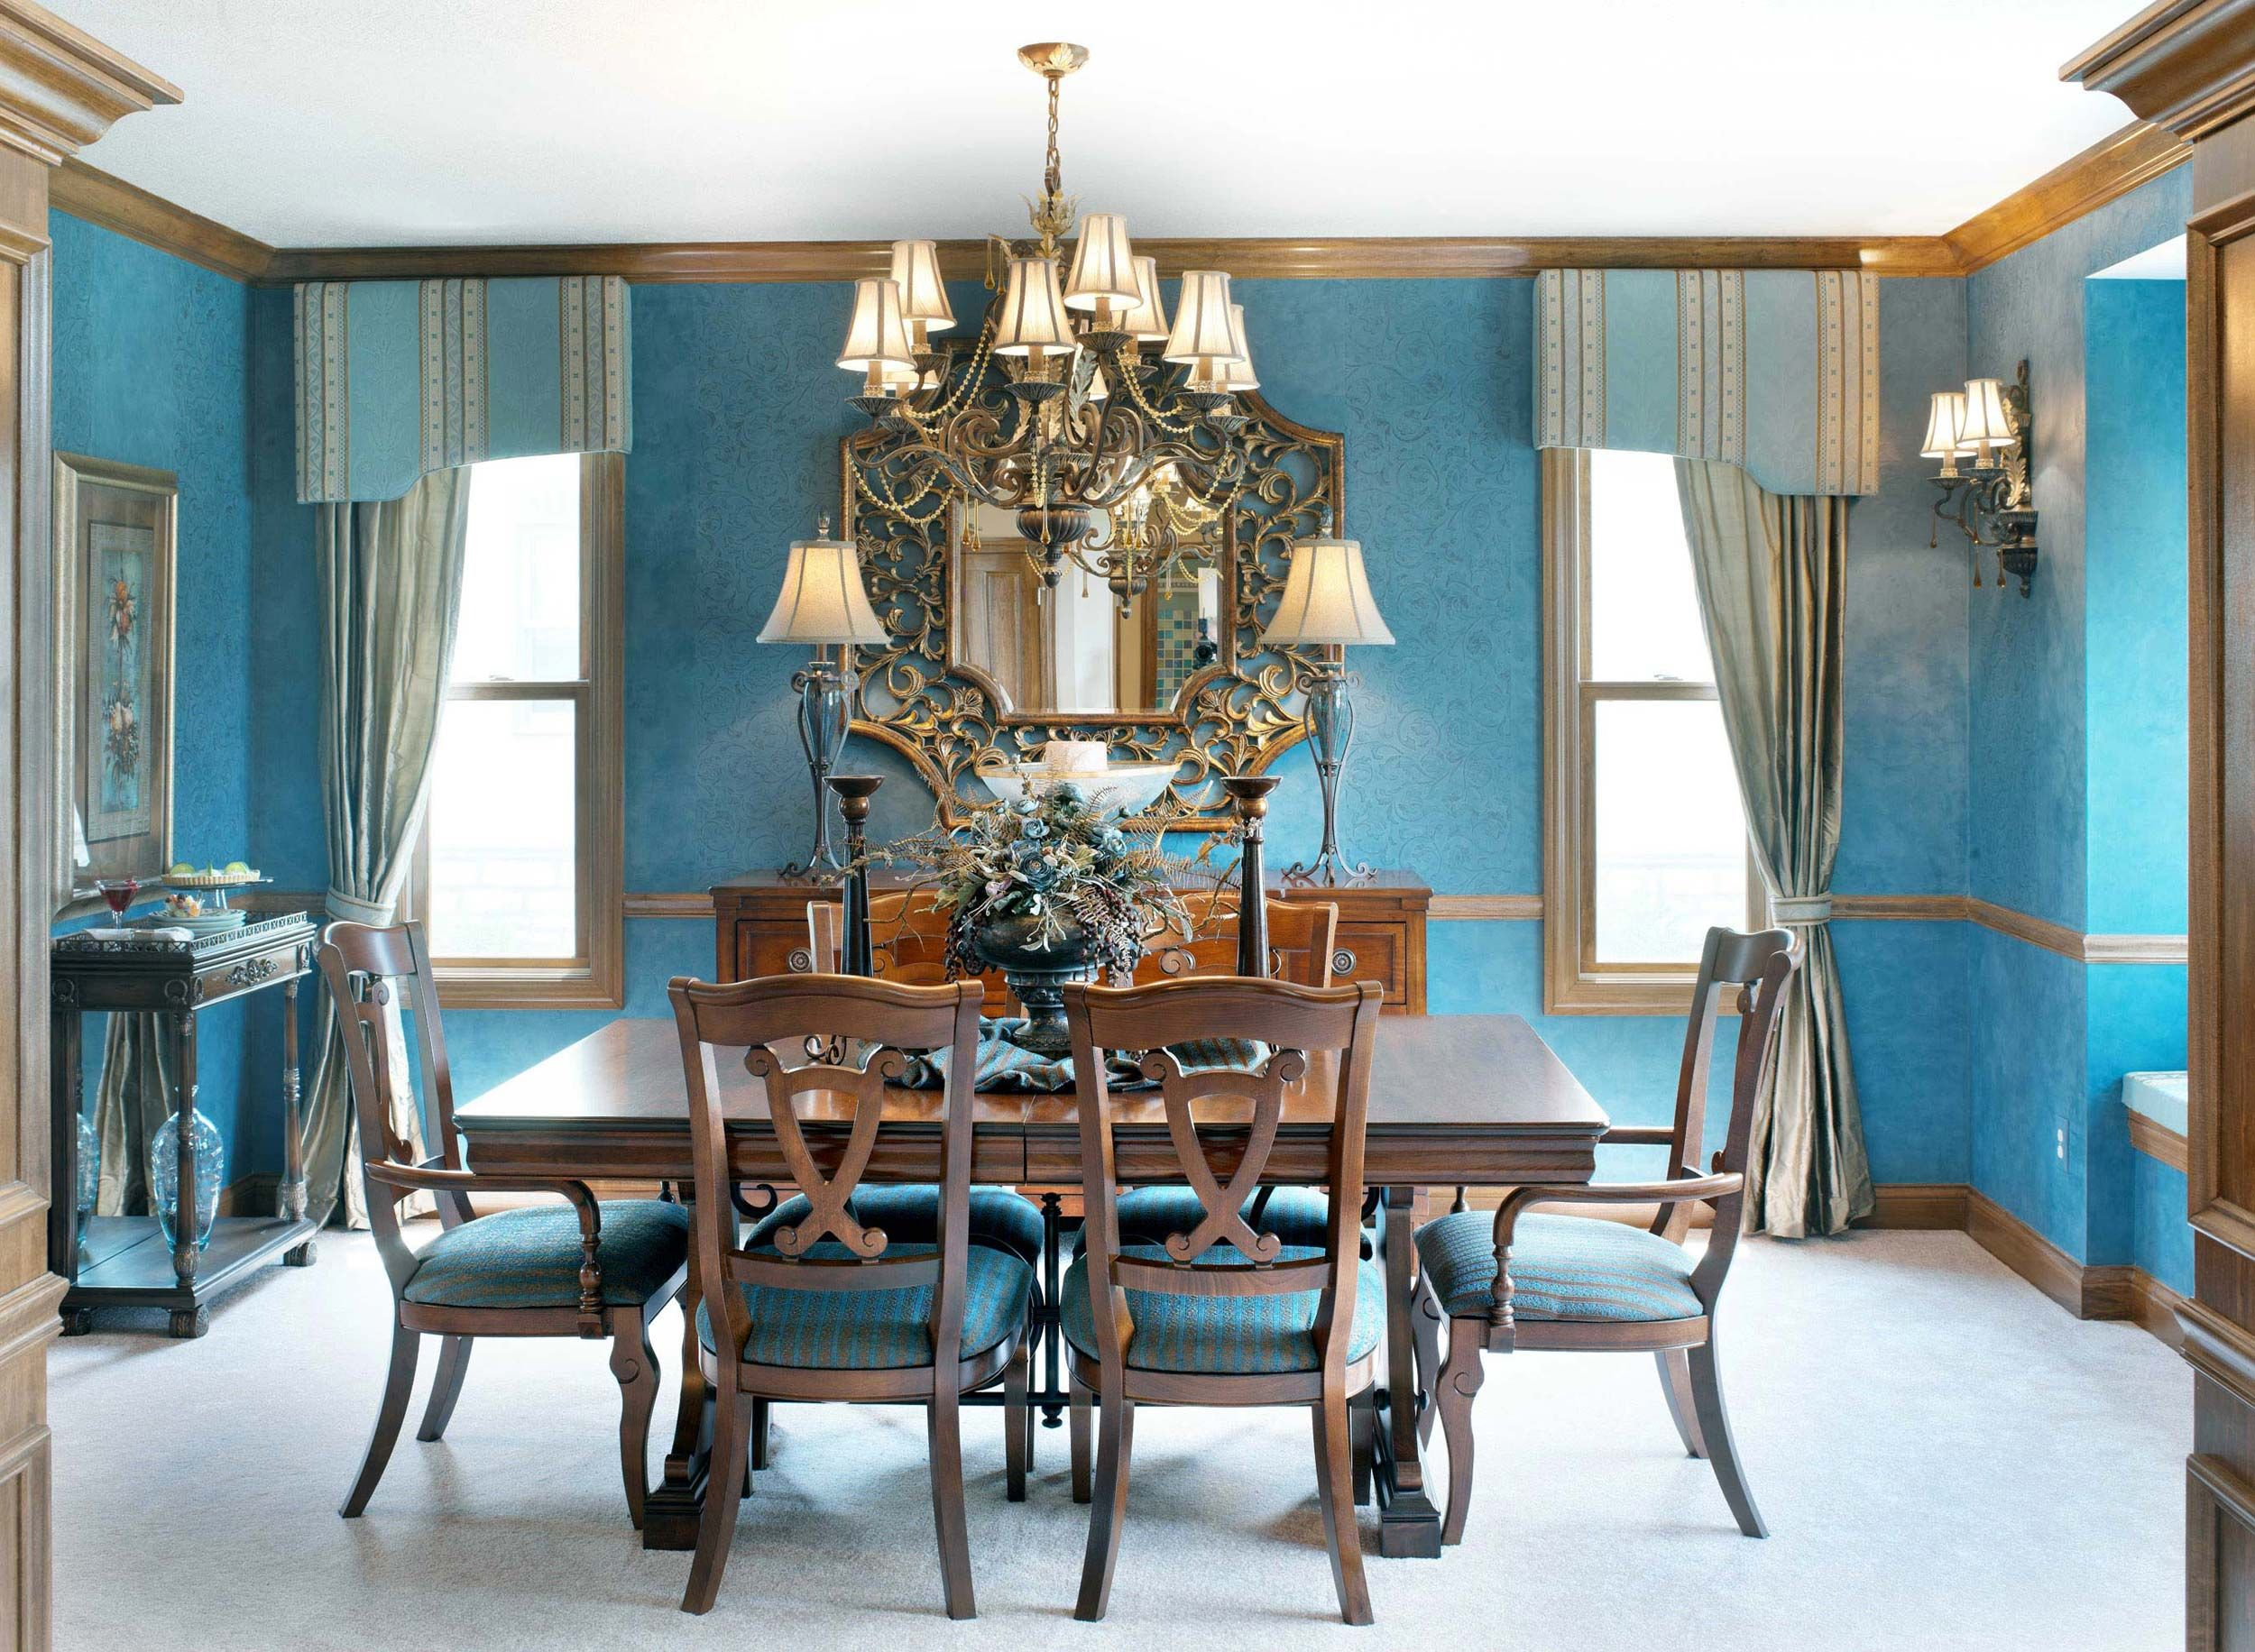 Dining Room Decor In A Classic Style And Shades Of Blue